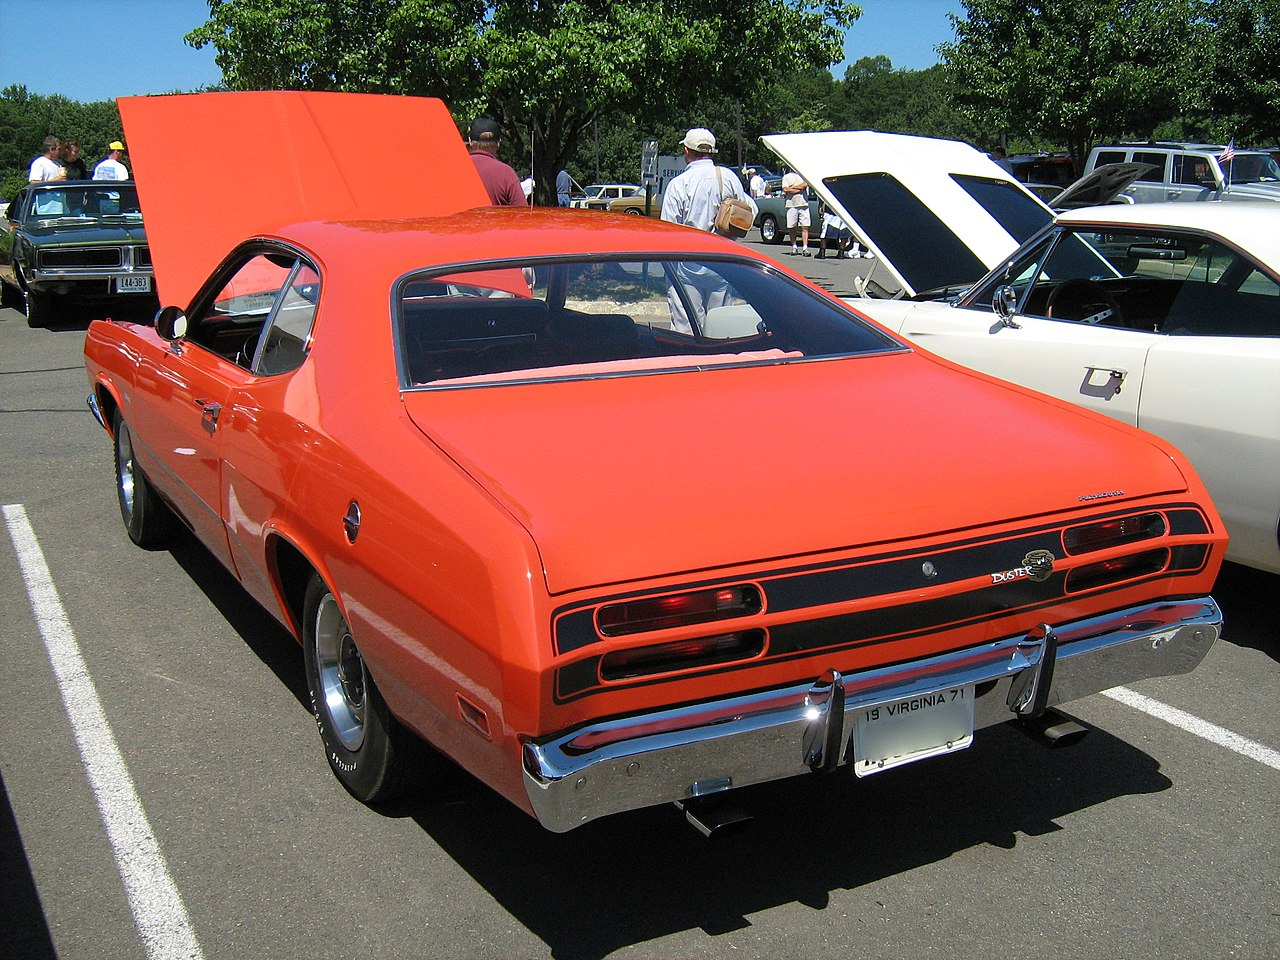 Plymouth Duster Project Car For Sale